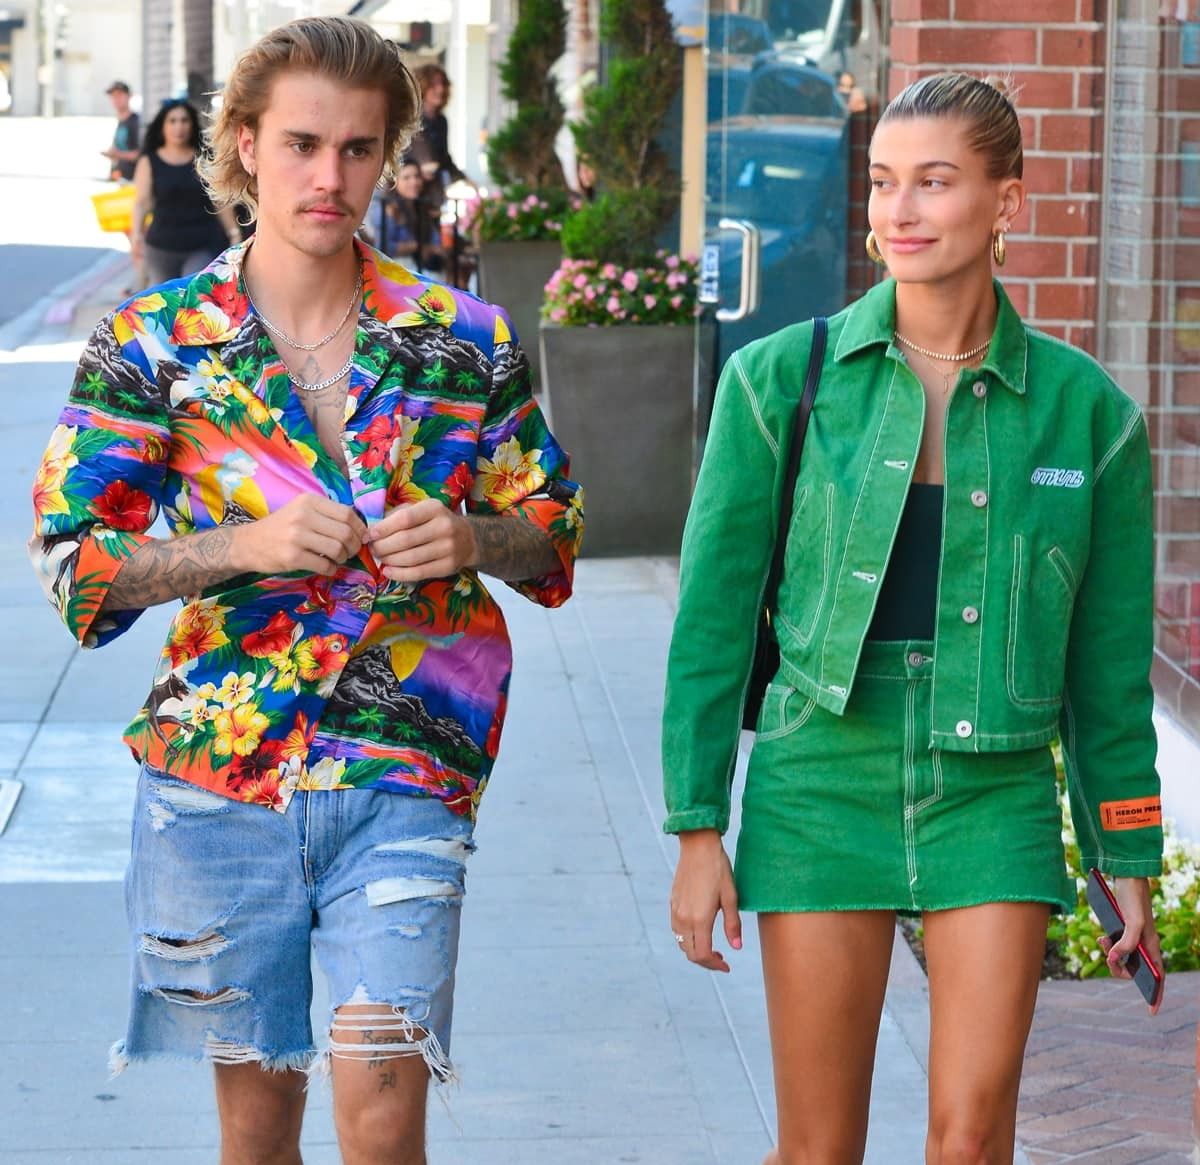 Hailey Baldwin in a green denim jacket and her boyfriend Justin Bieber head to a doctor's appointment